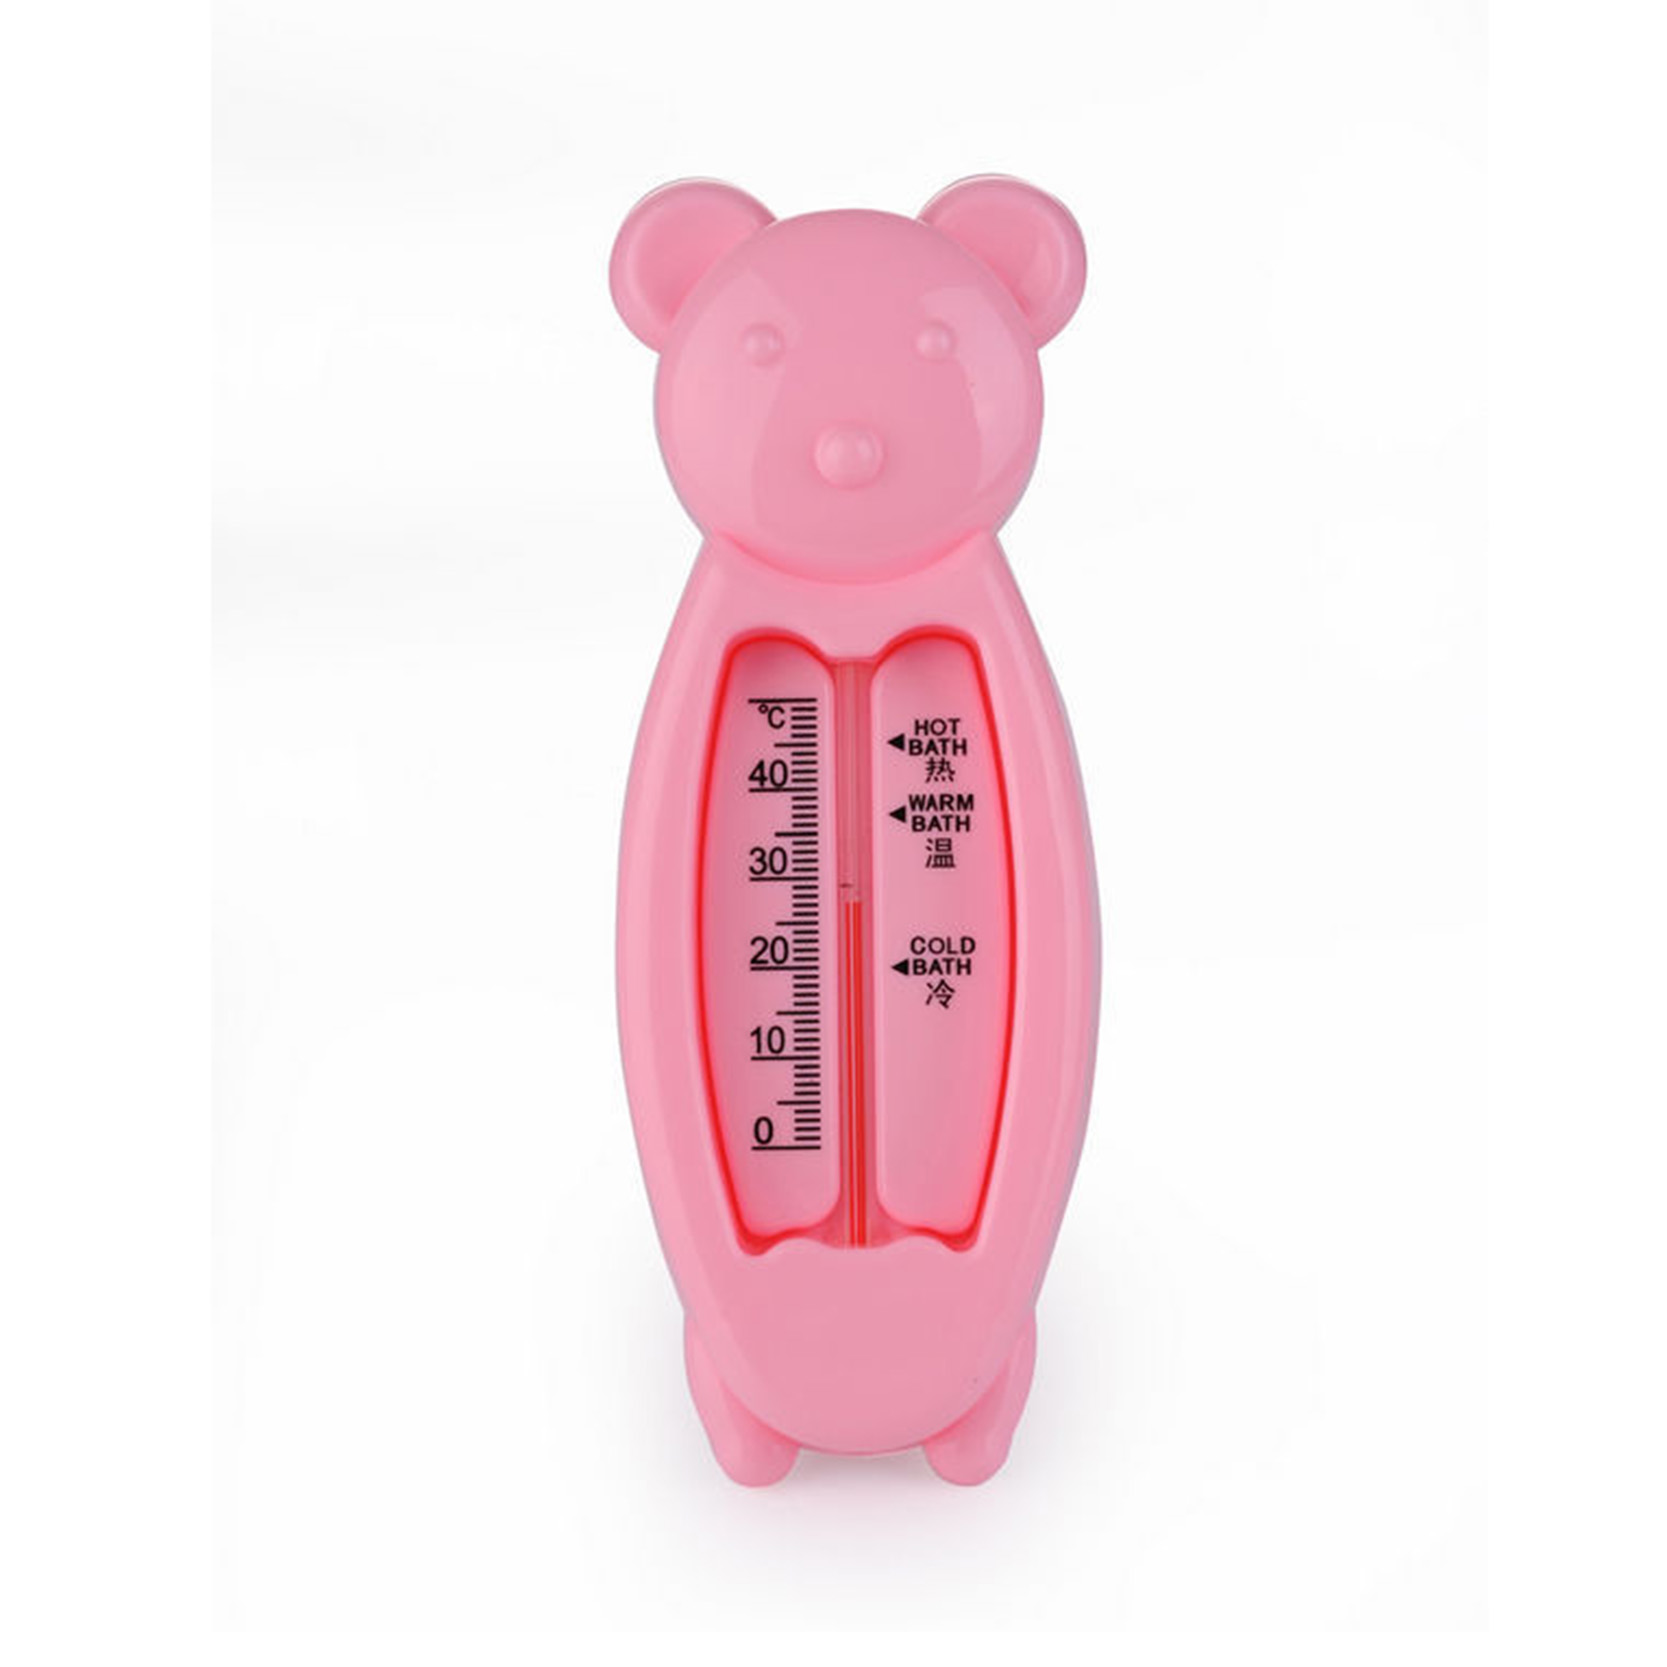 Floating Lovely Bear Baby Water Thermometer Float Baby Bath Toy Thermometer Tub Water Sensor Thermometer(China (Mainland))